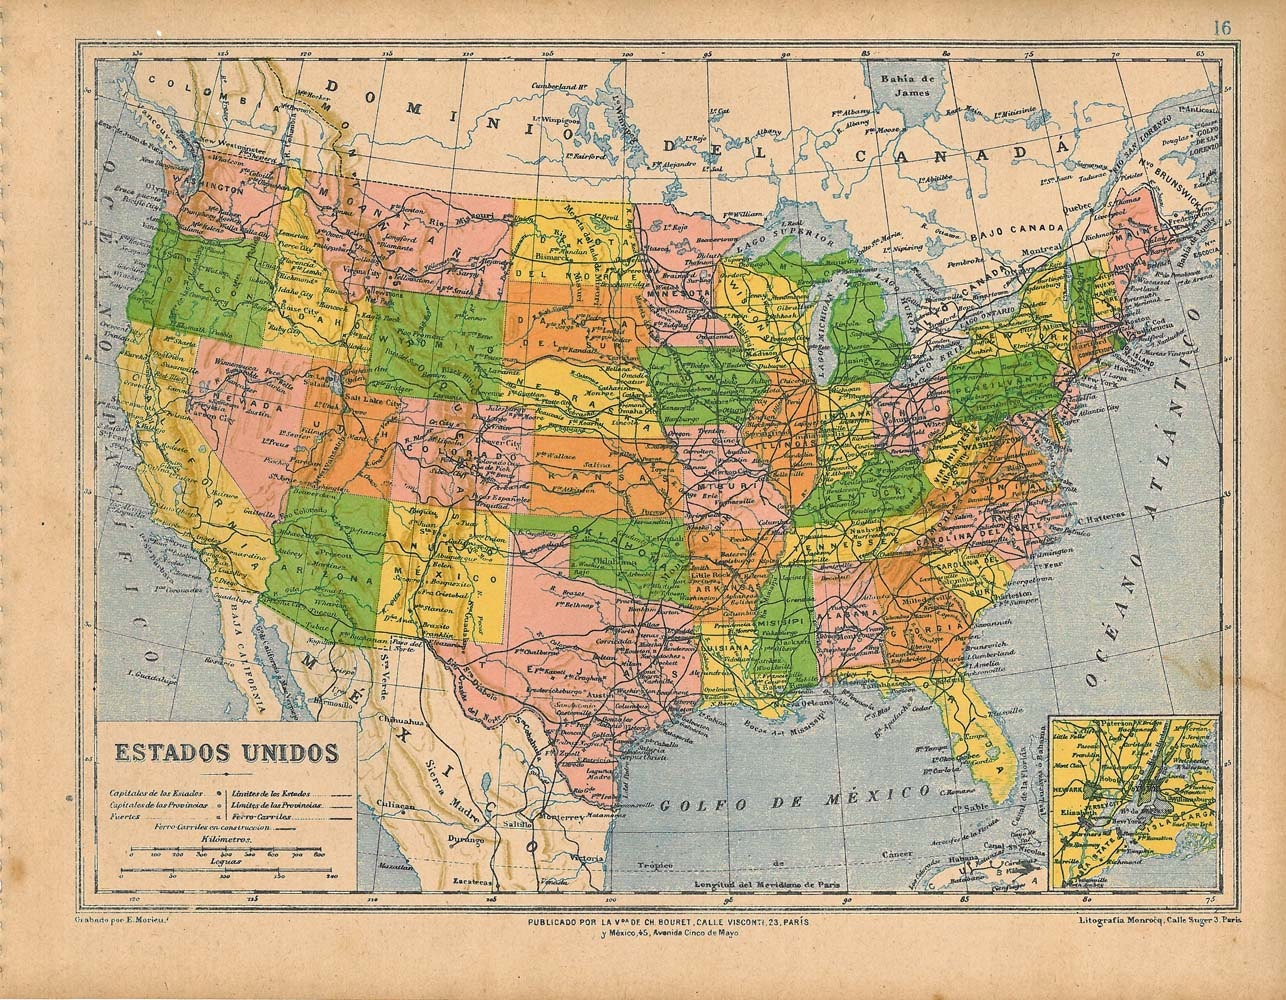 Vintage colored map